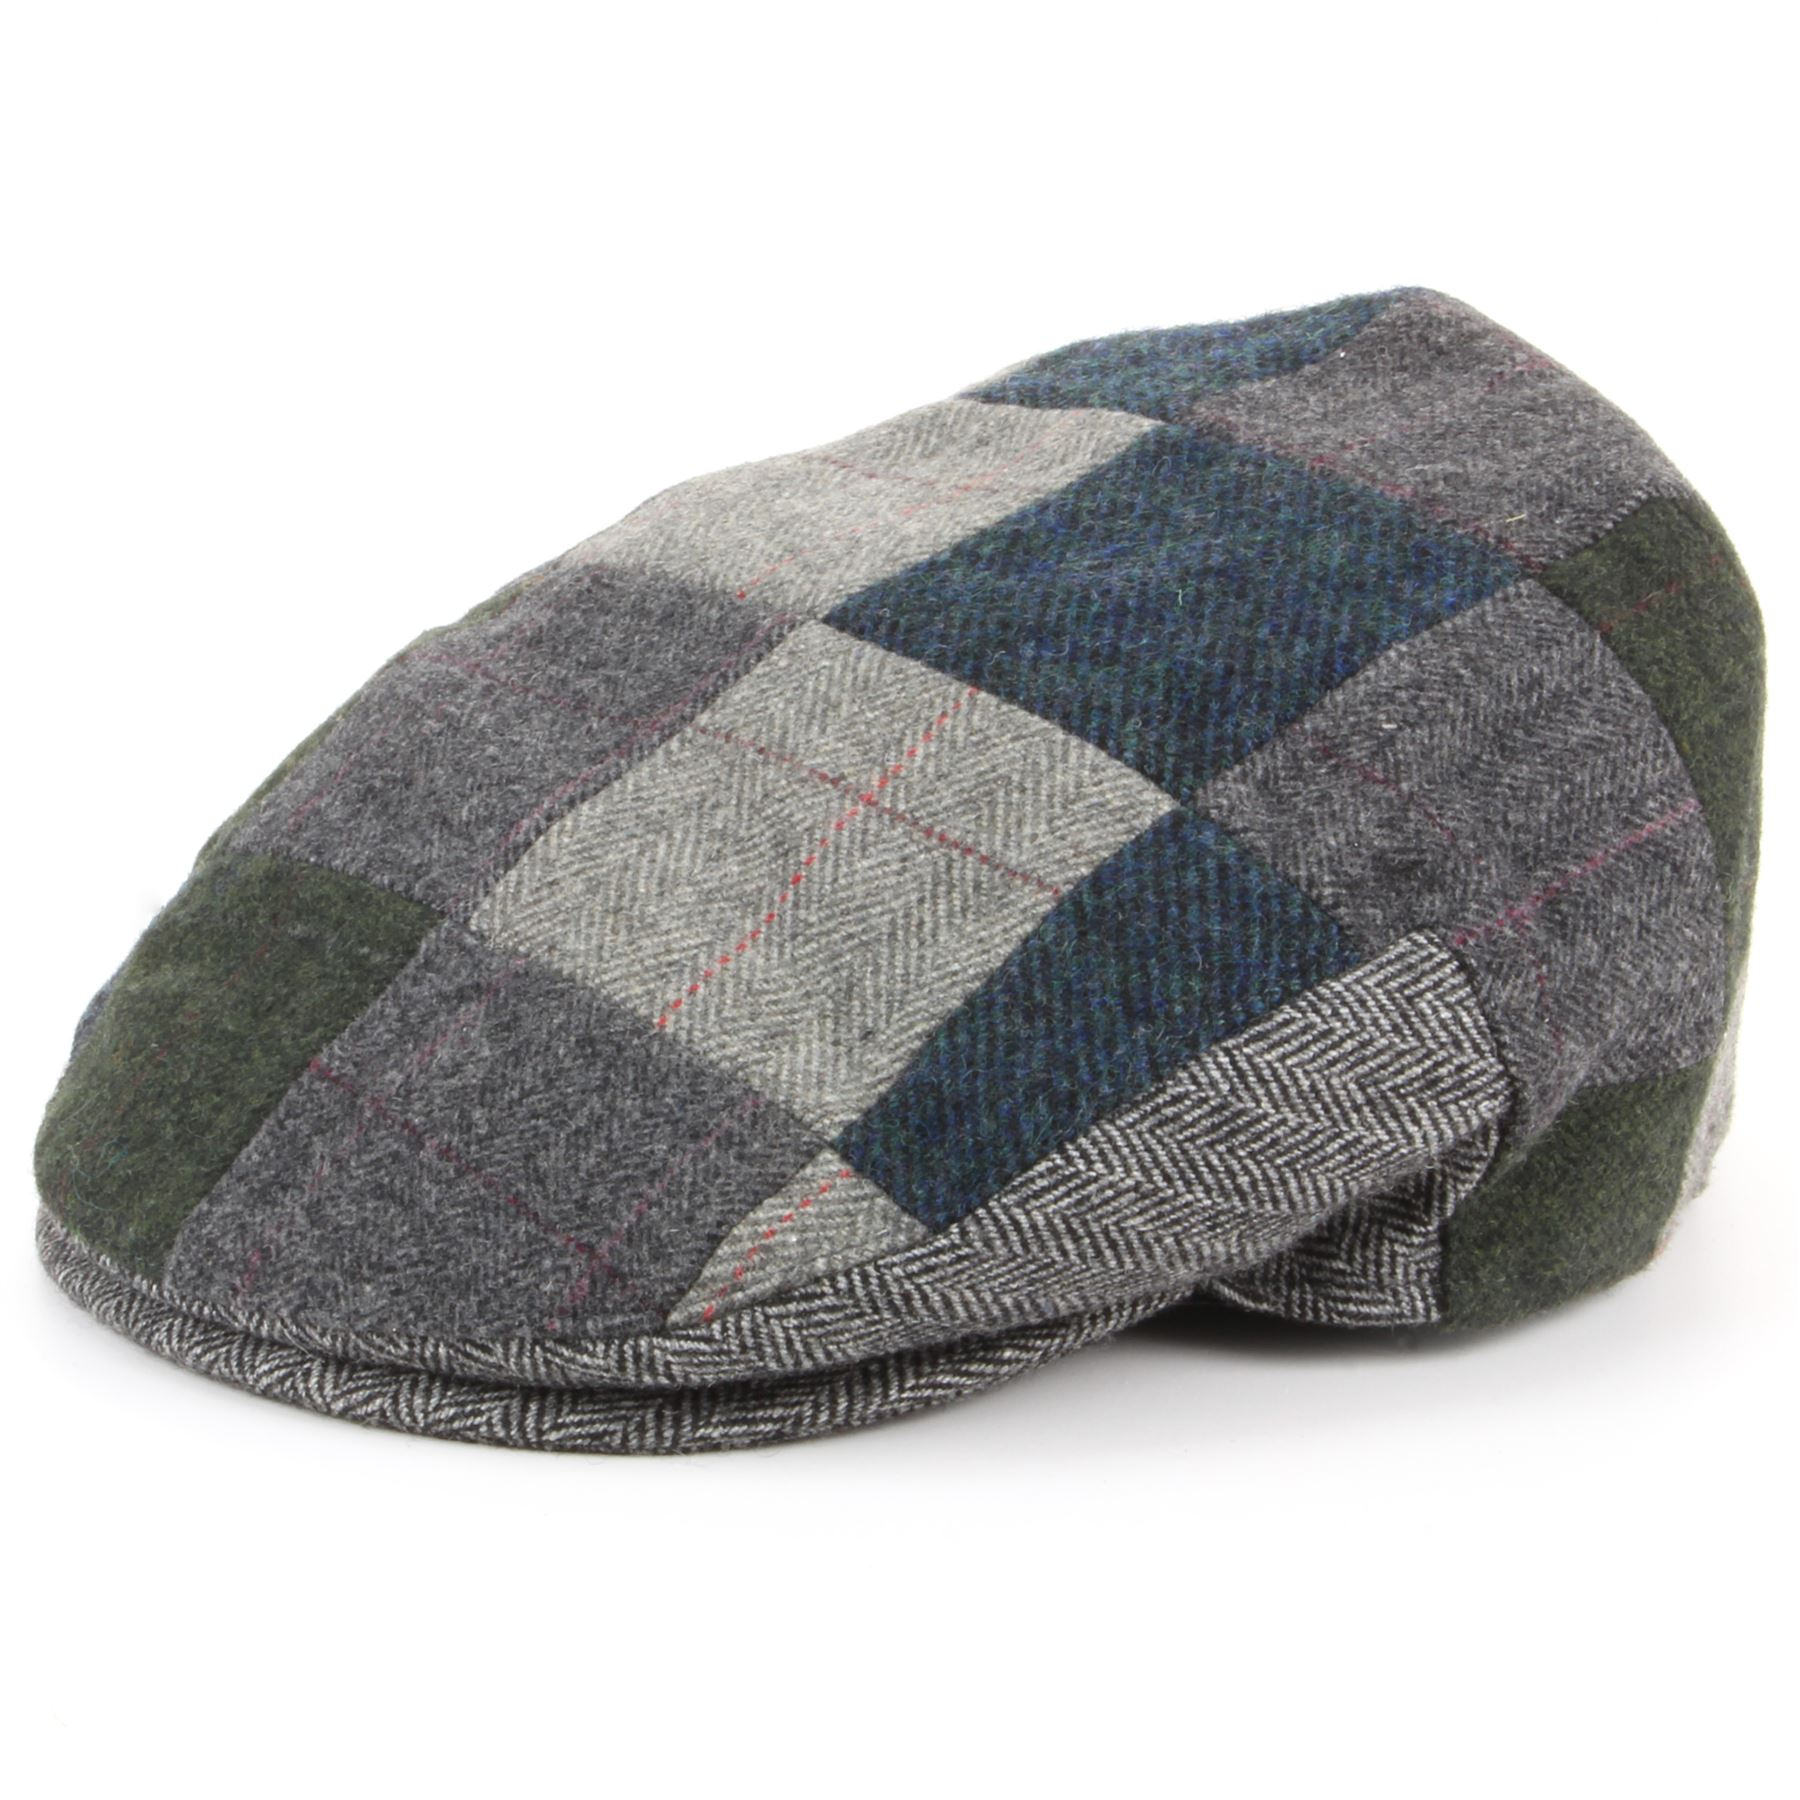 Hat Patchwork Tweed Flat Cap Blue Brown New Winter Hunting Walking ... ad38c130c87